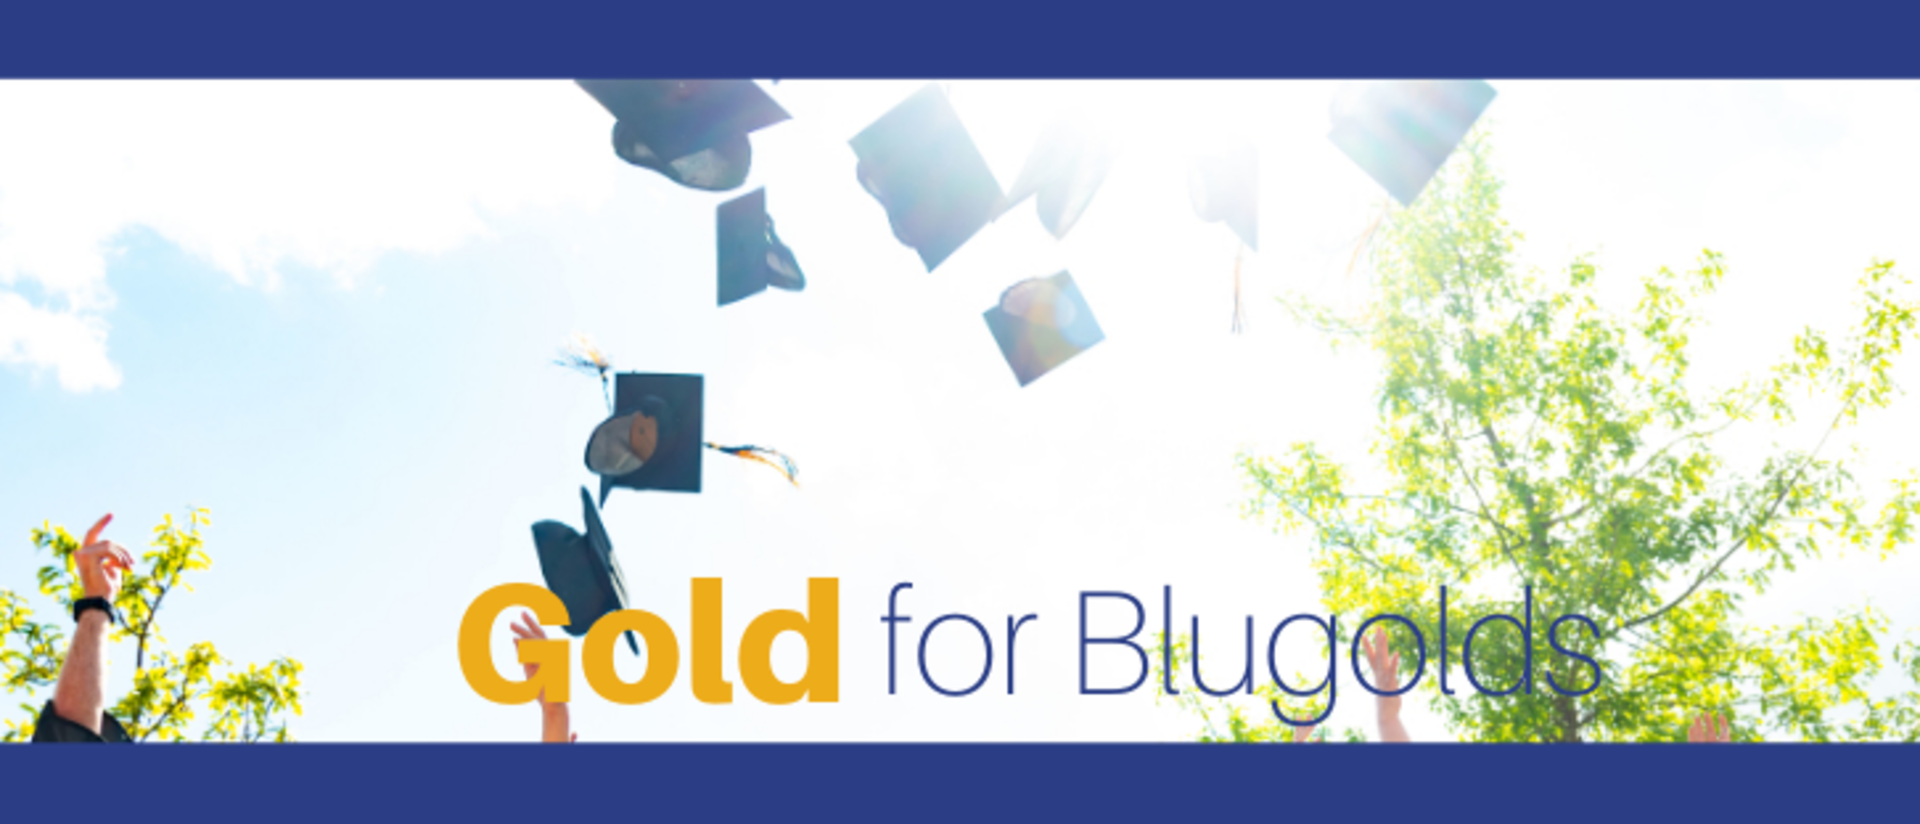 Gold for Blugolds (COB)